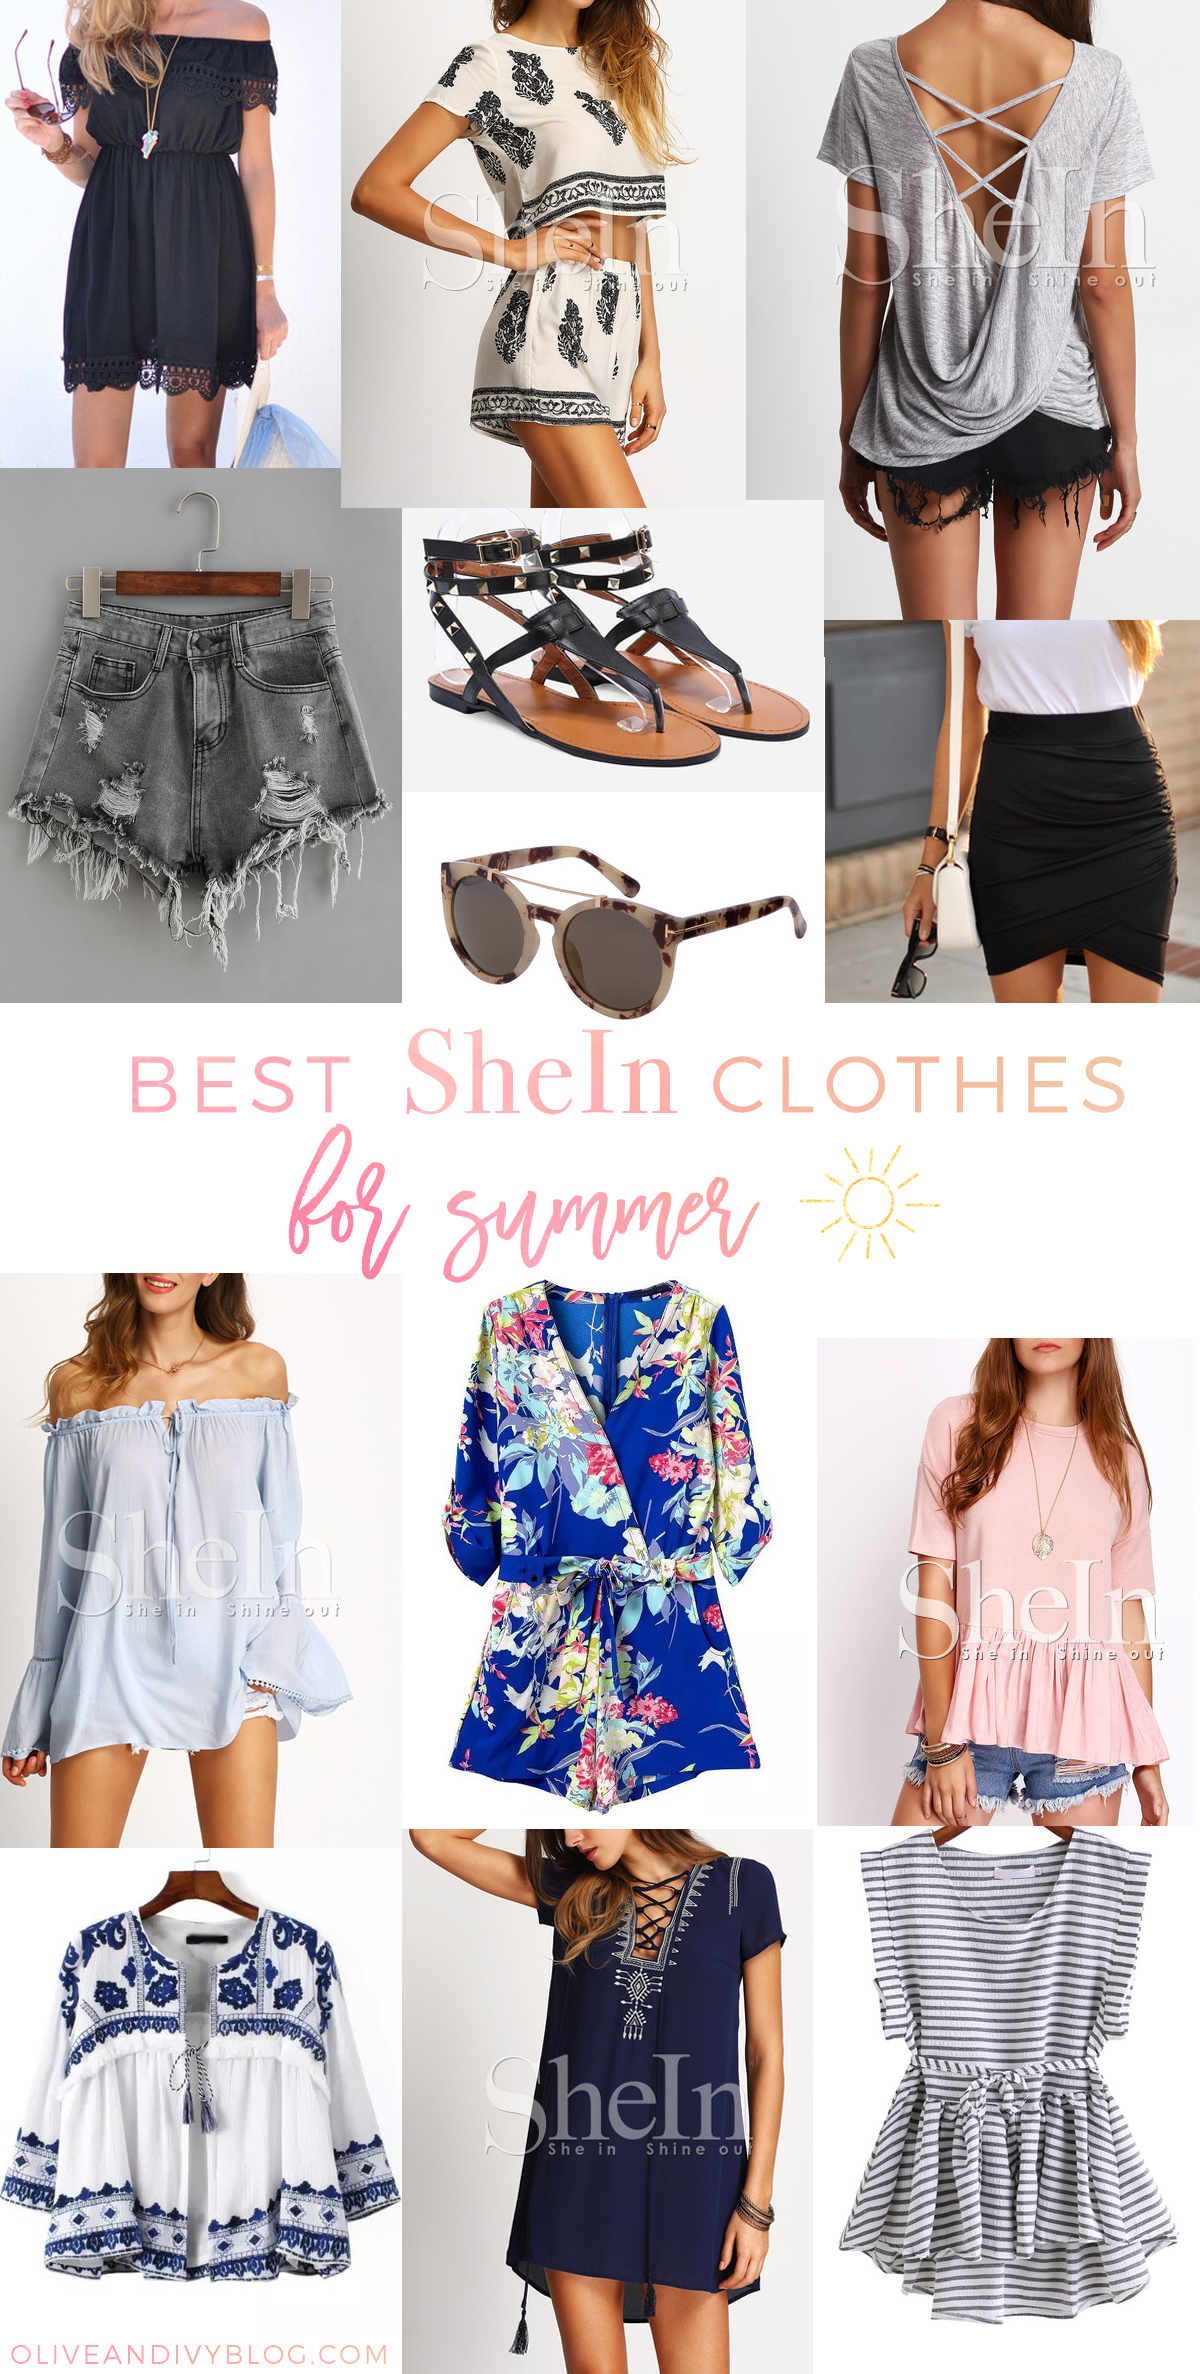 shein outfits summer 2020 dress